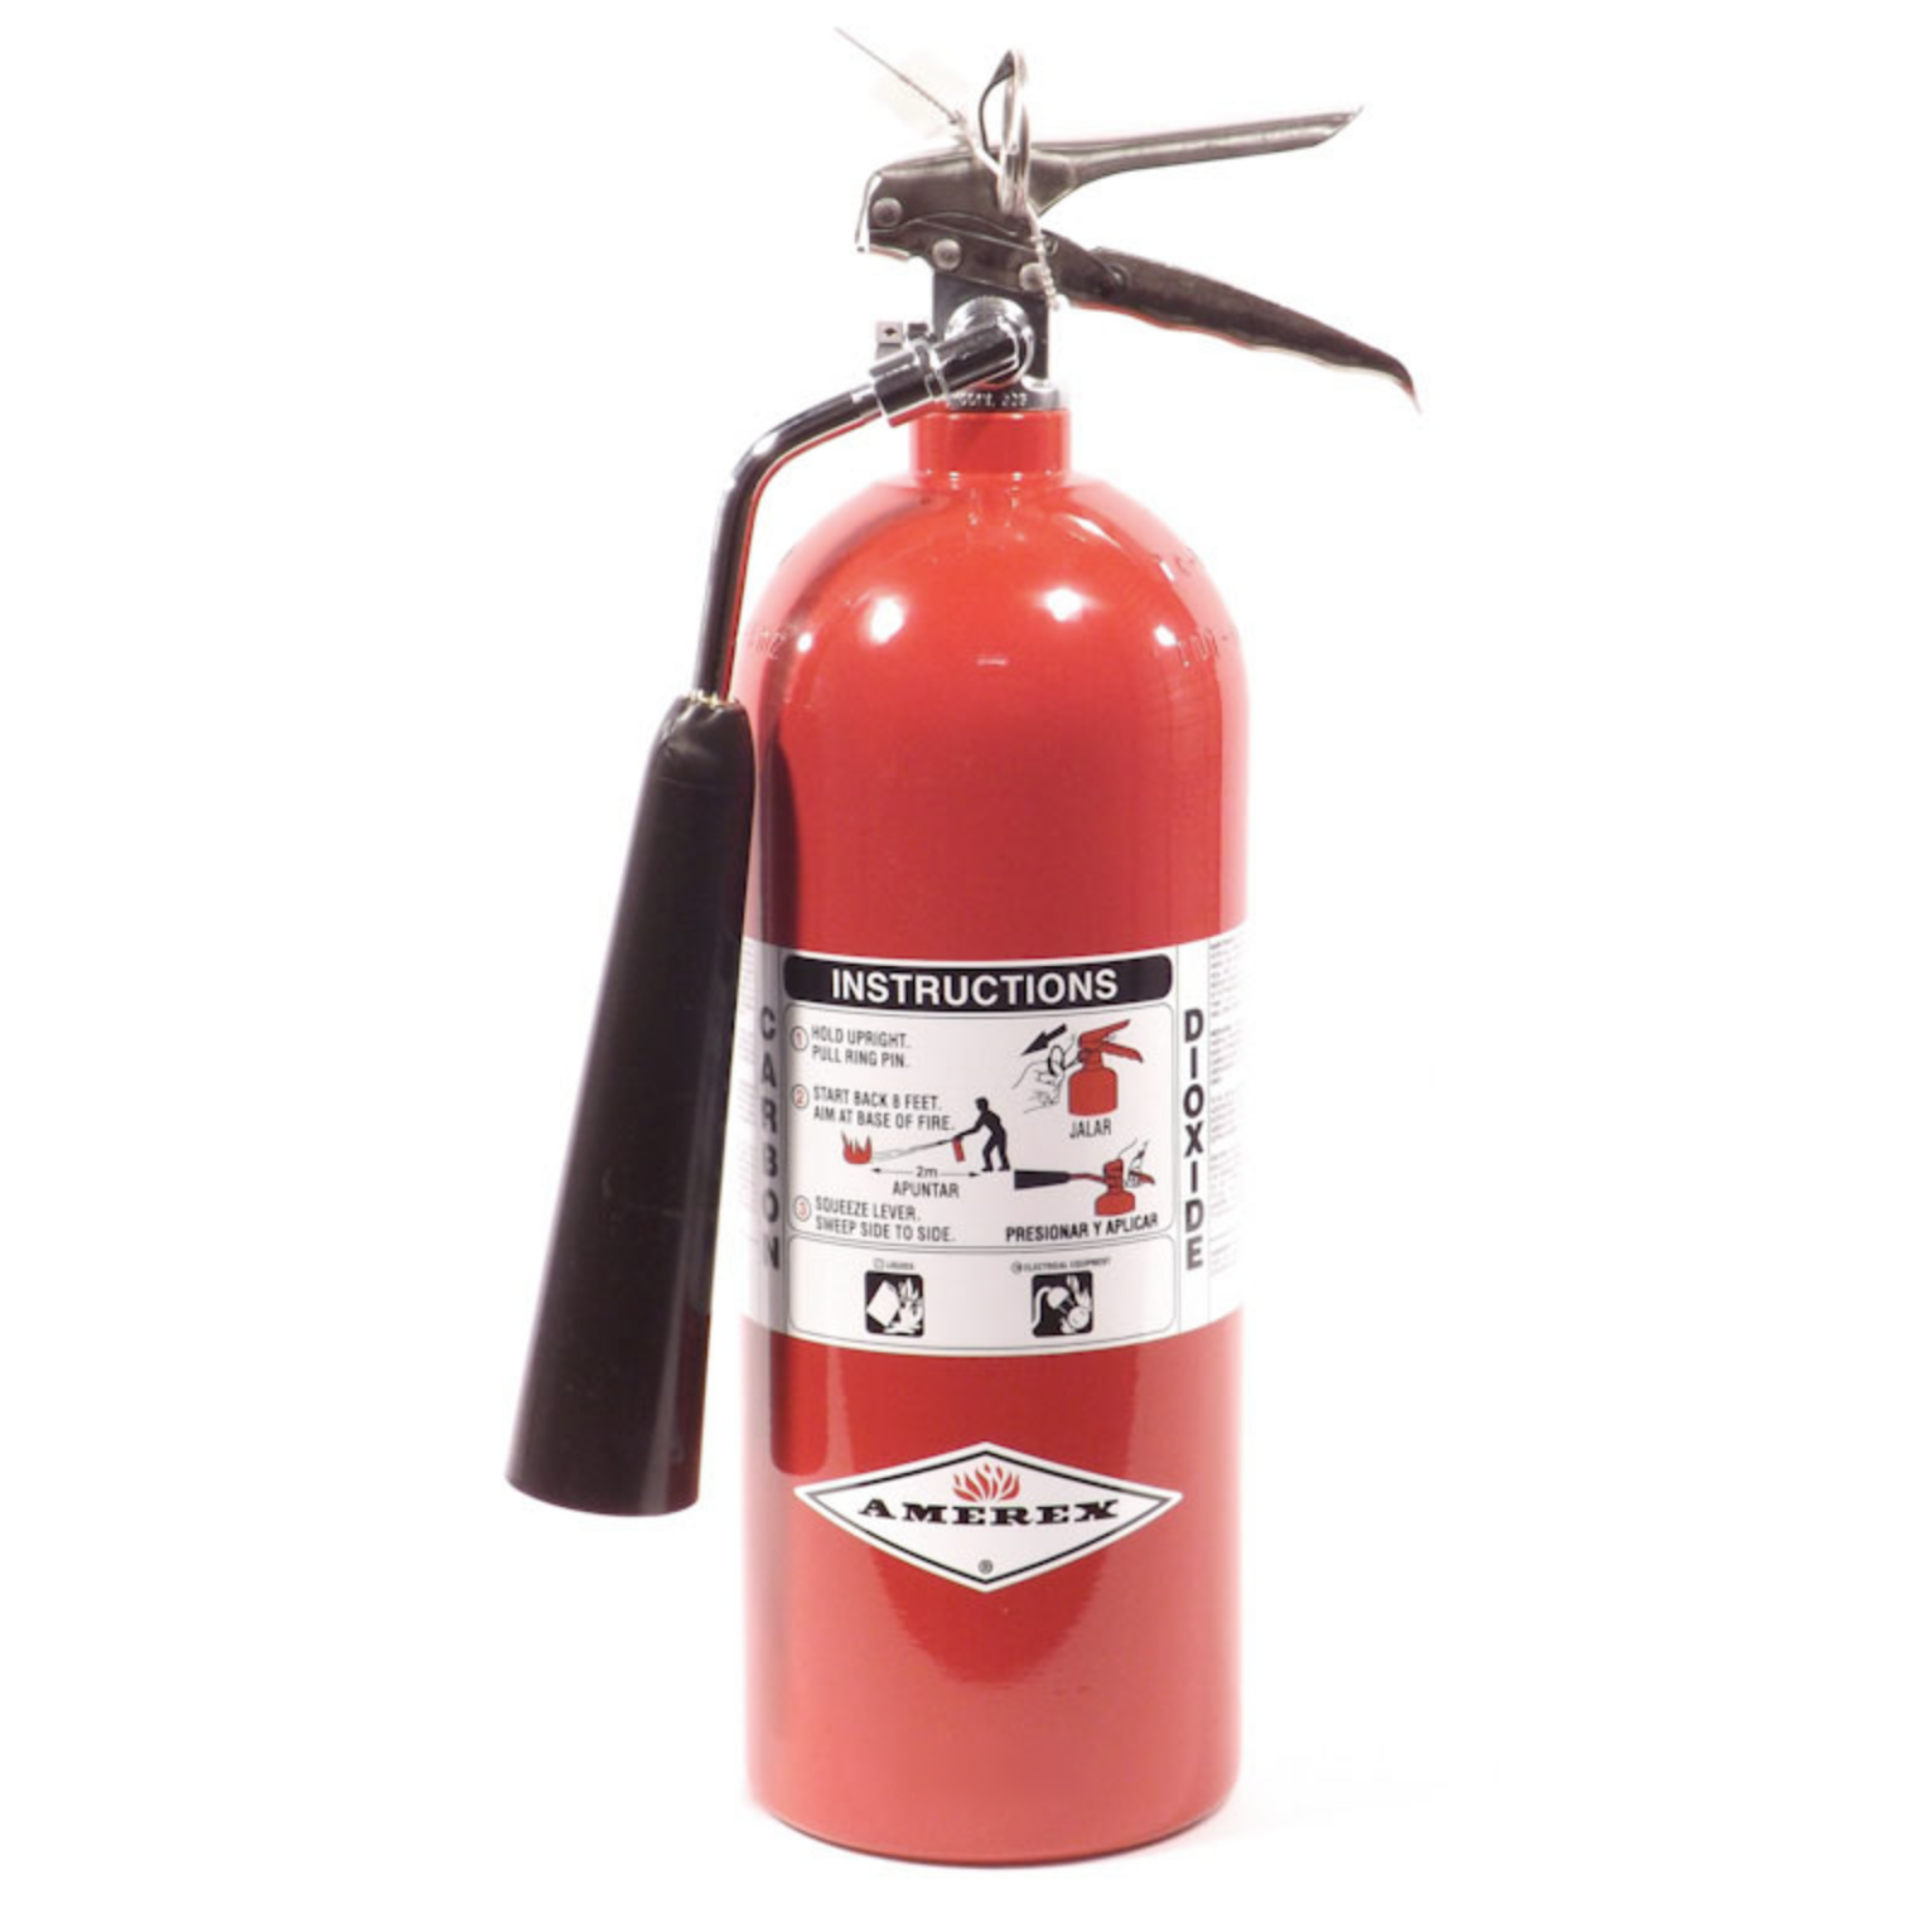 Amerex, Fire Extinguisher, 5 lb BC Fire Extinguisher, CO2, Carbon Dioxide, Commercial Fire Extinguisher, Wall Bracket, 322NM, Monthly Record Tag, Great for Electronics